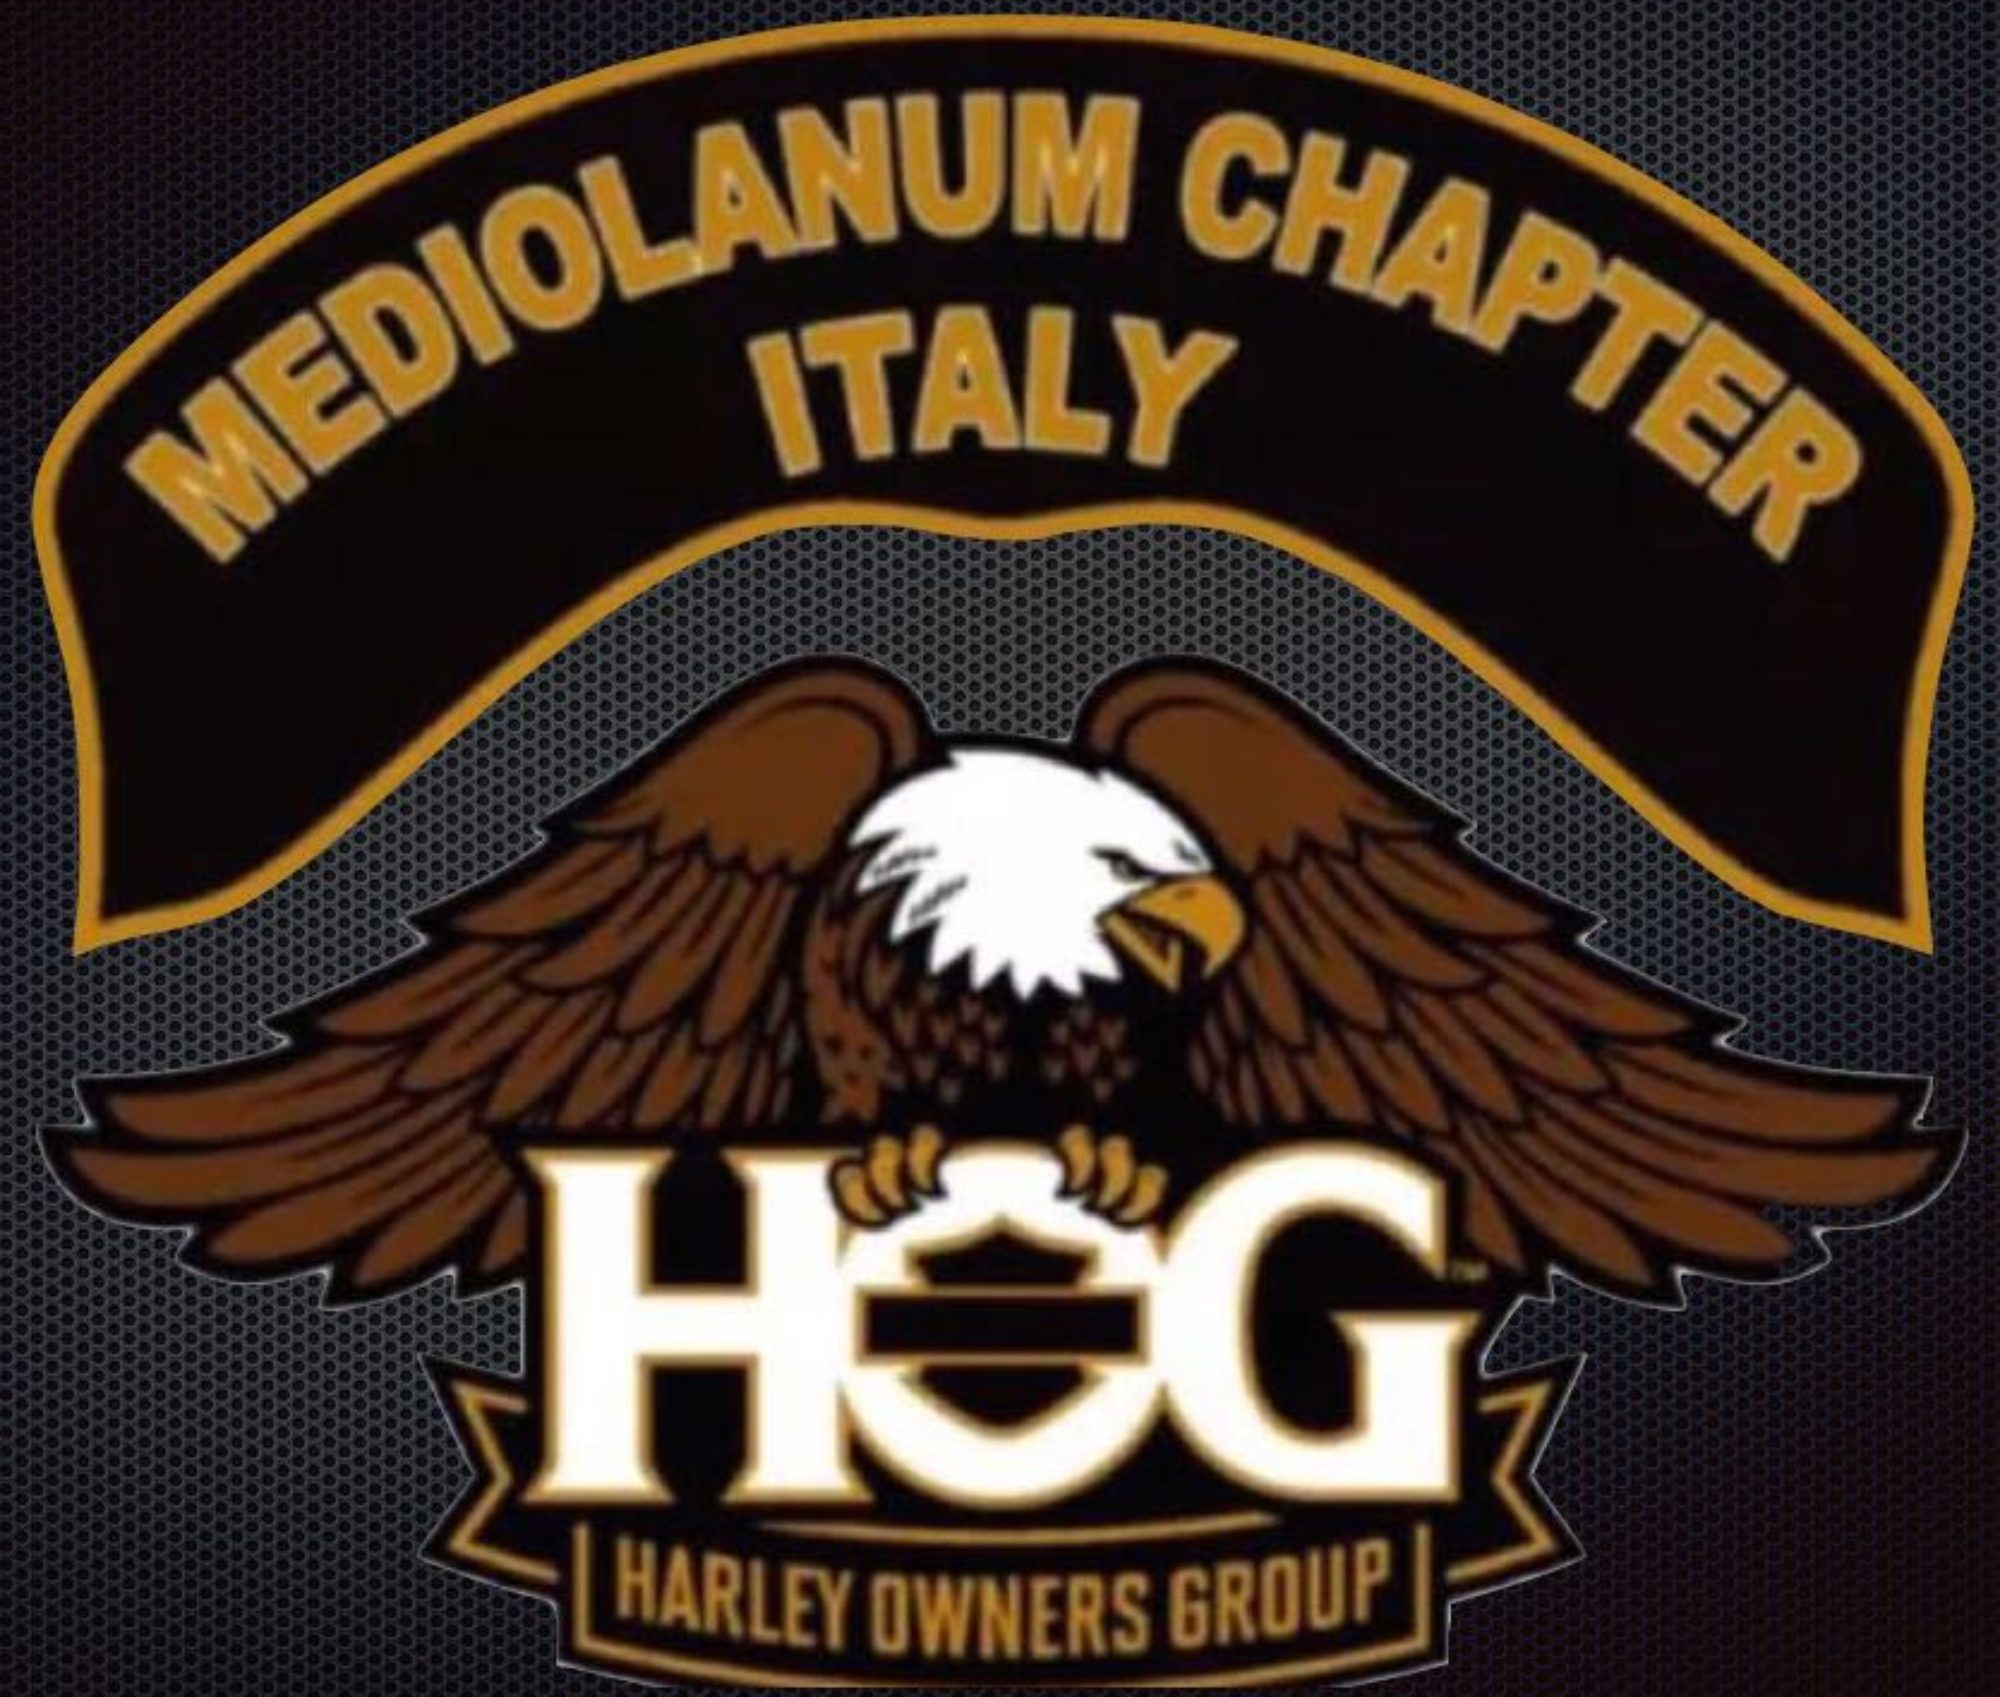 Mediolanum Chapter Italy HOG #9871